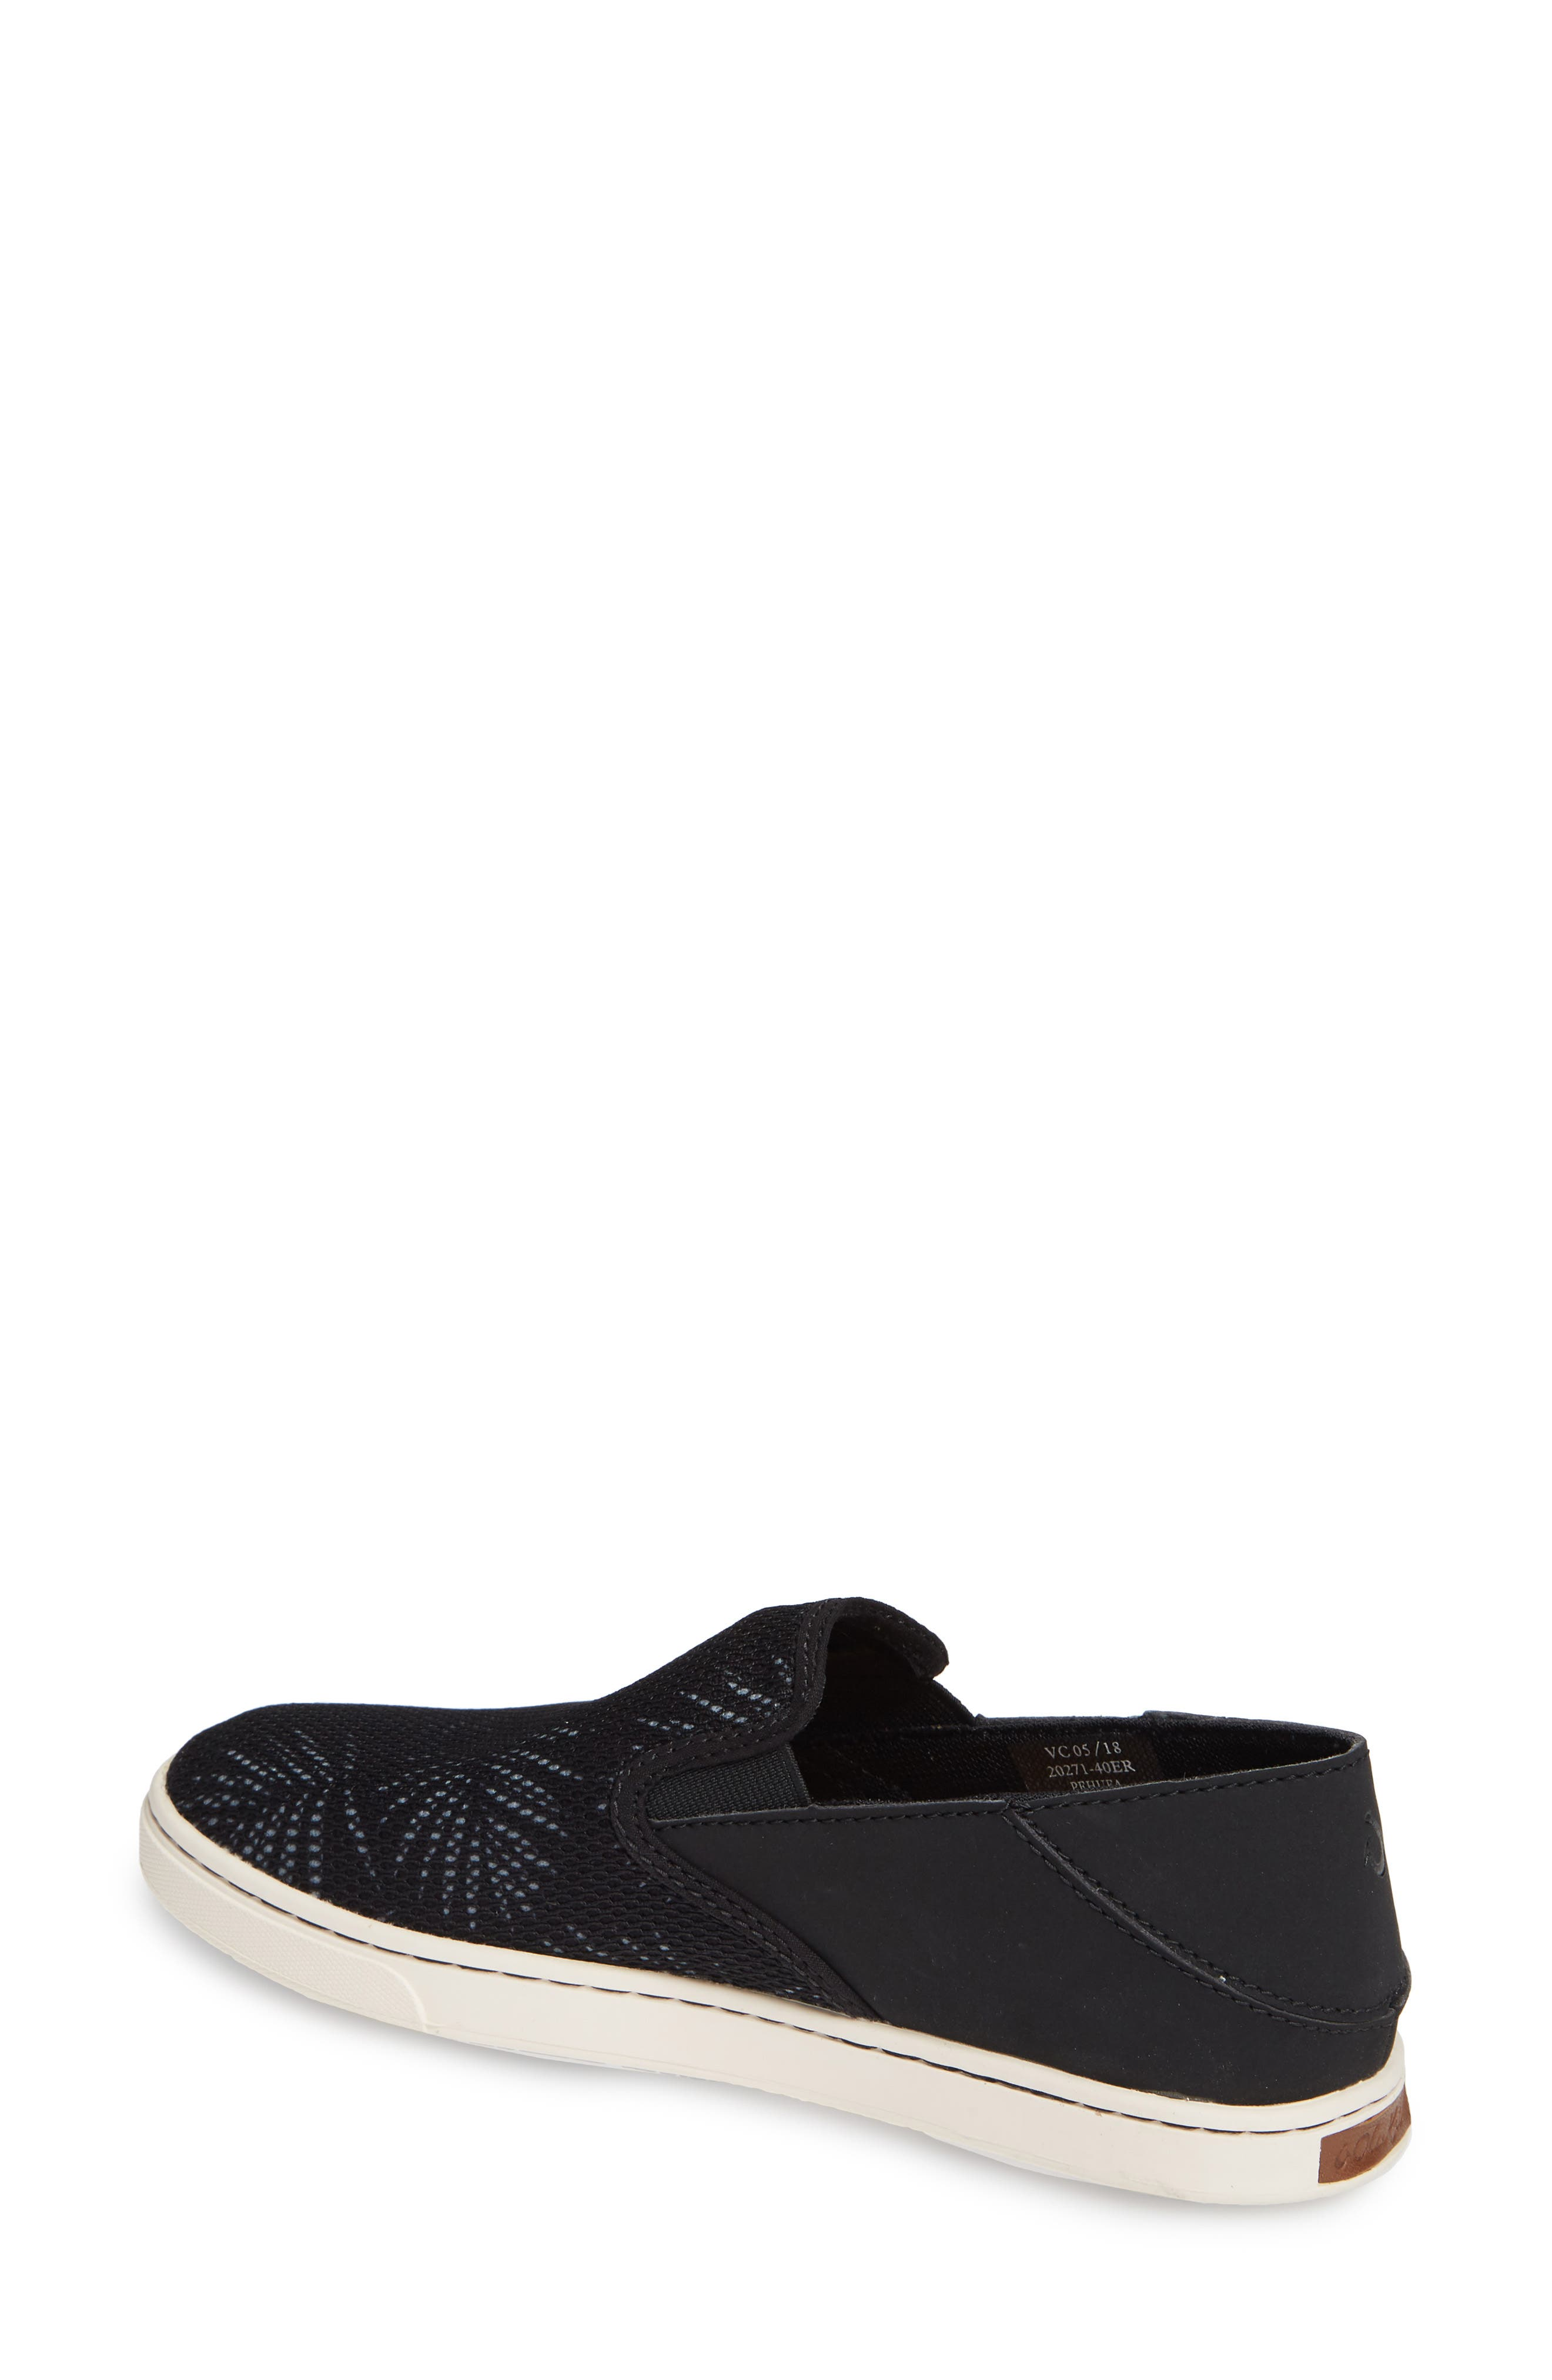 'Pehuea' Slip-On Sneaker,                             Alternate thumbnail 2, color,                             Black/ Palm Fabric